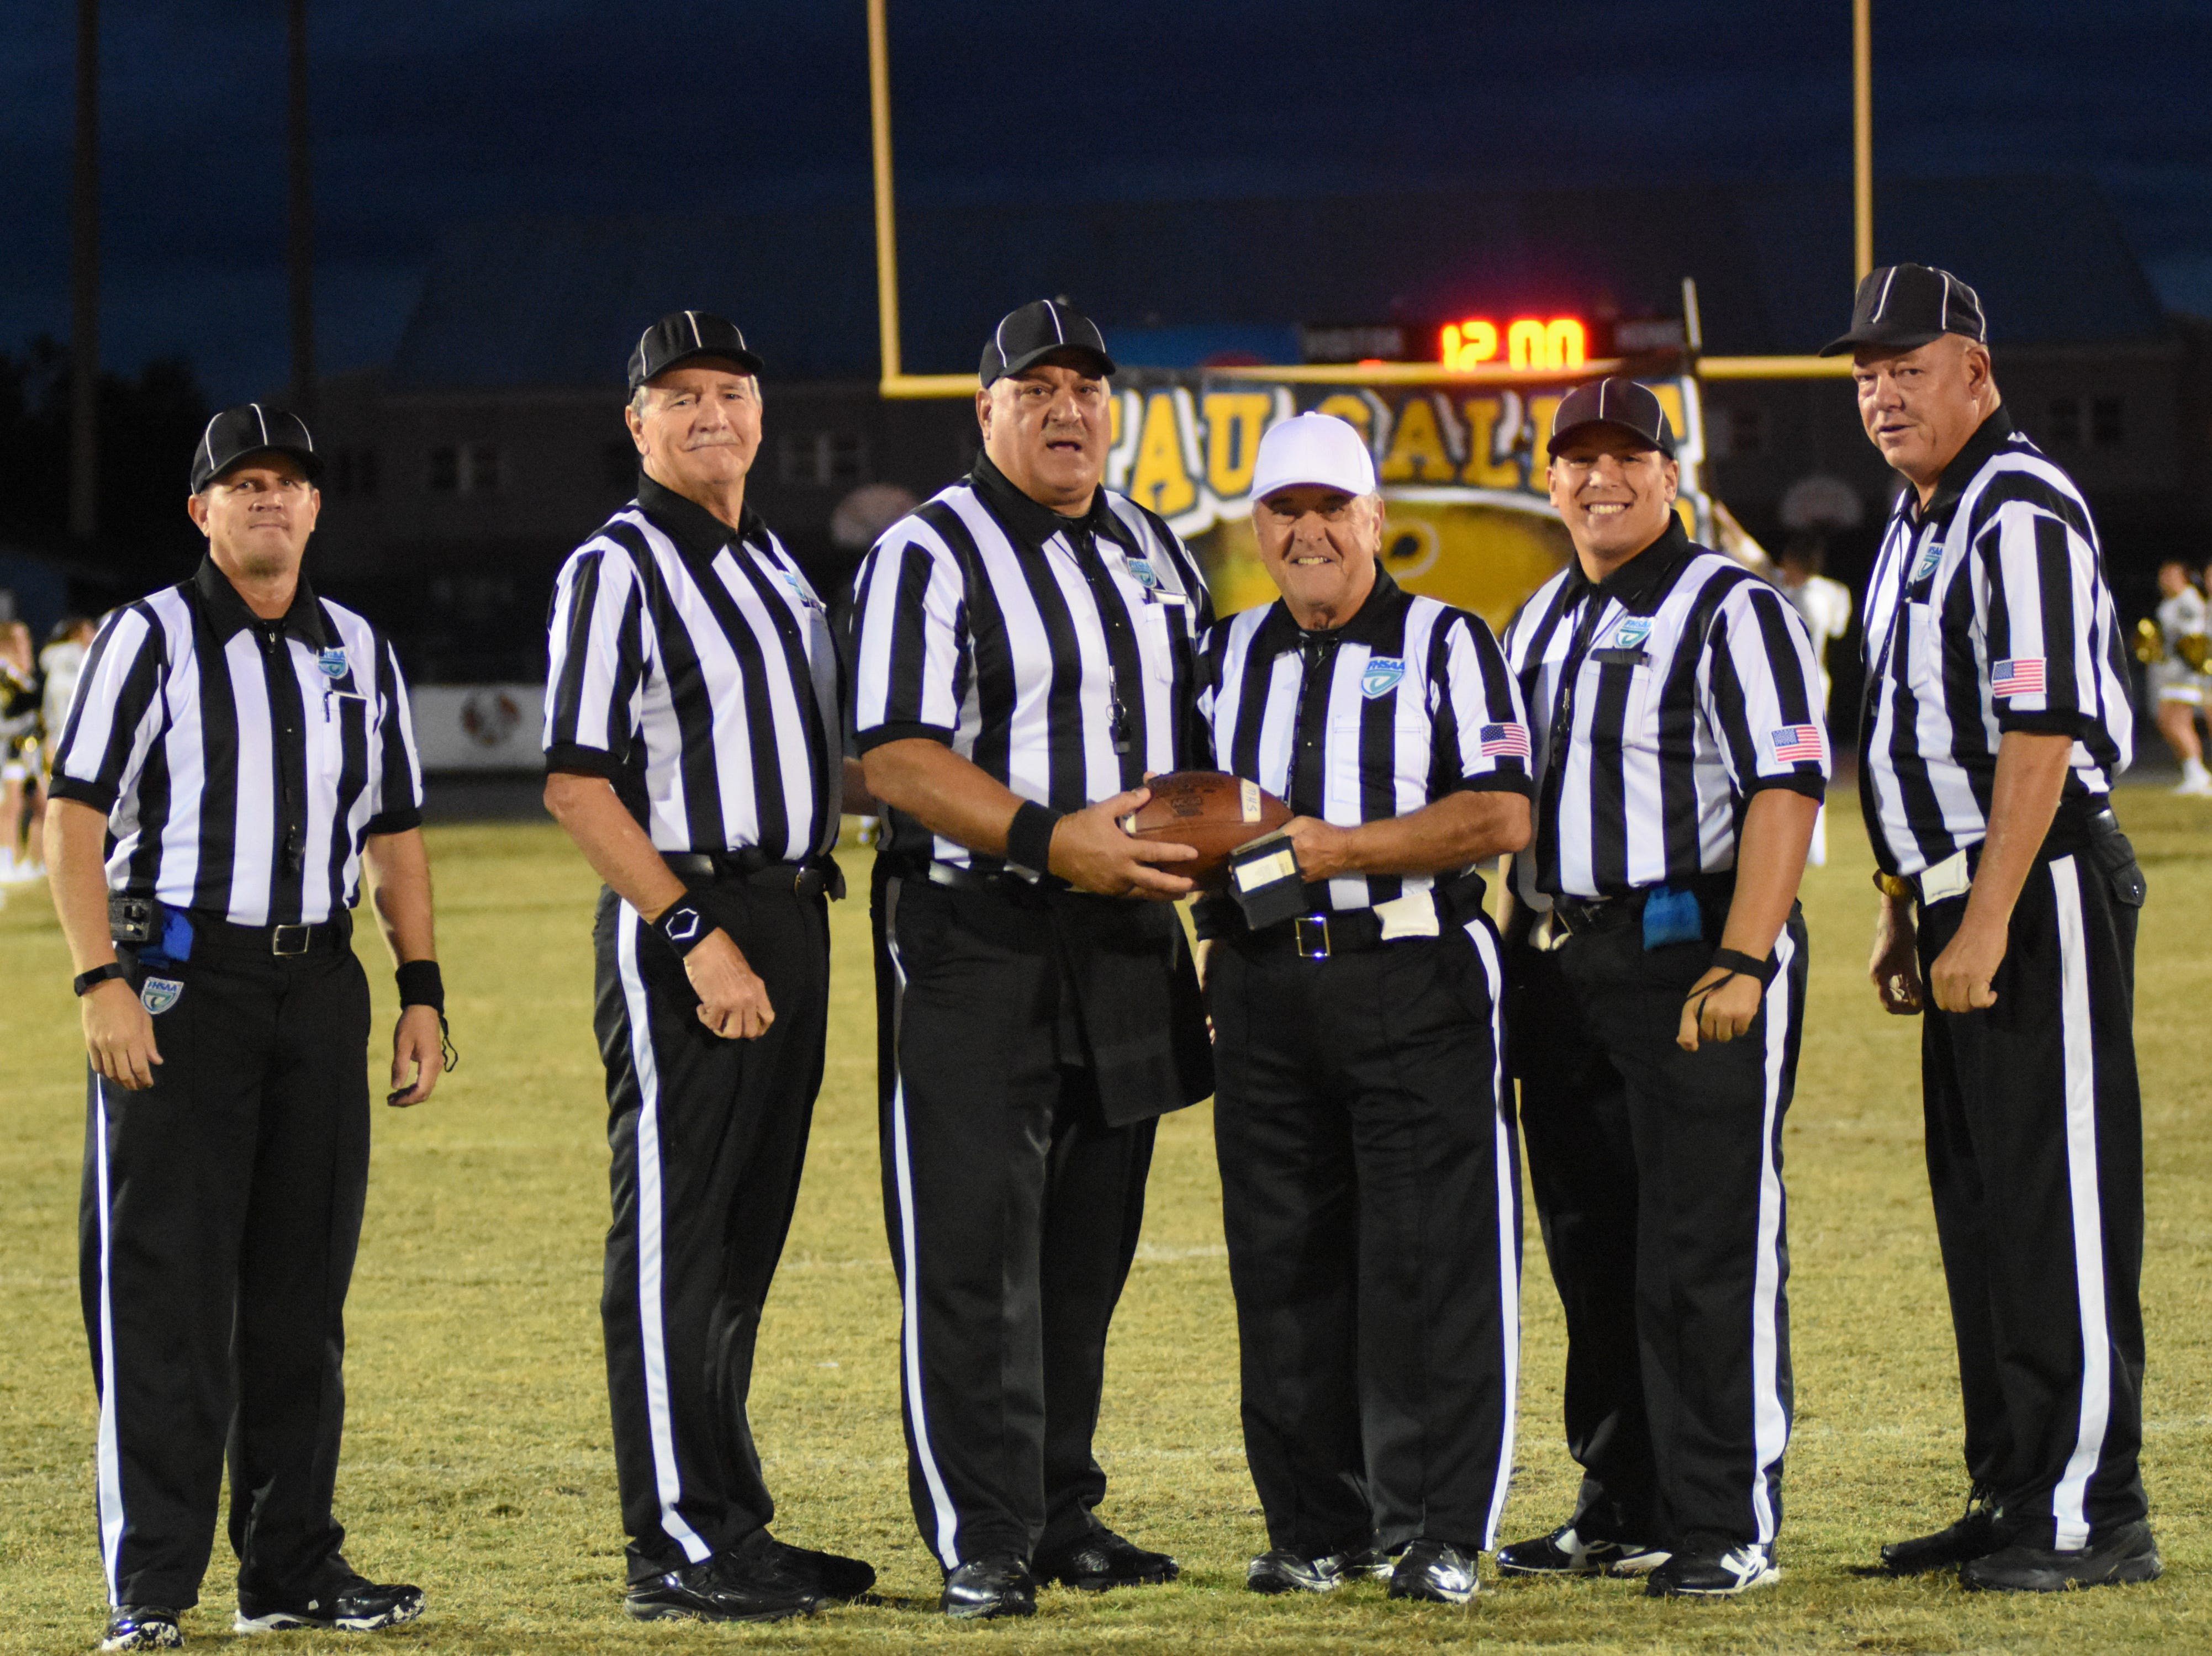 Friday Night's officials team pose for a photo.